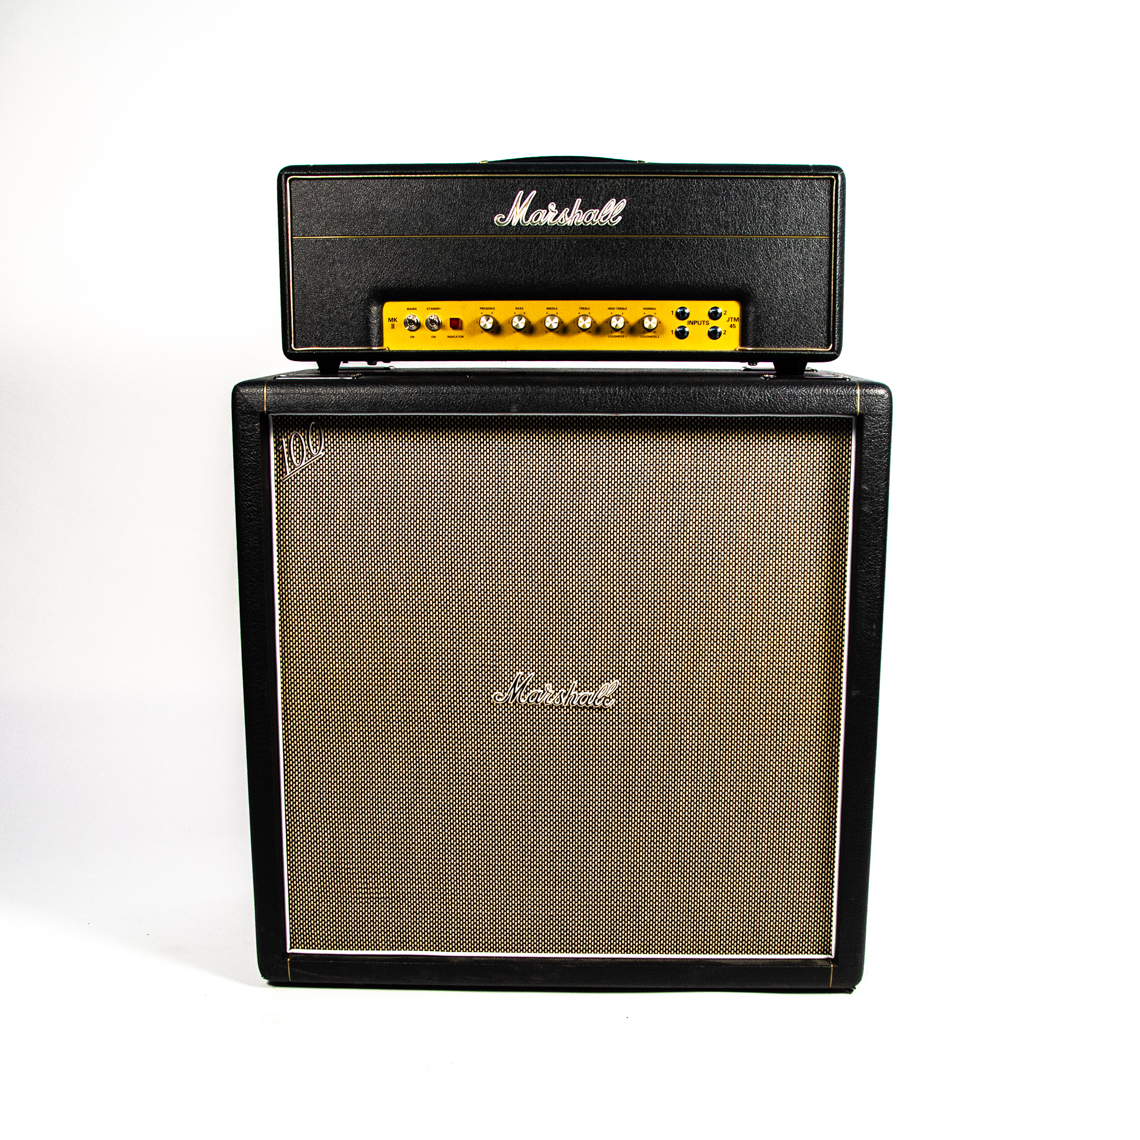 Hoppus' Marshall JTM45 amp head with a 4x12 cabinet